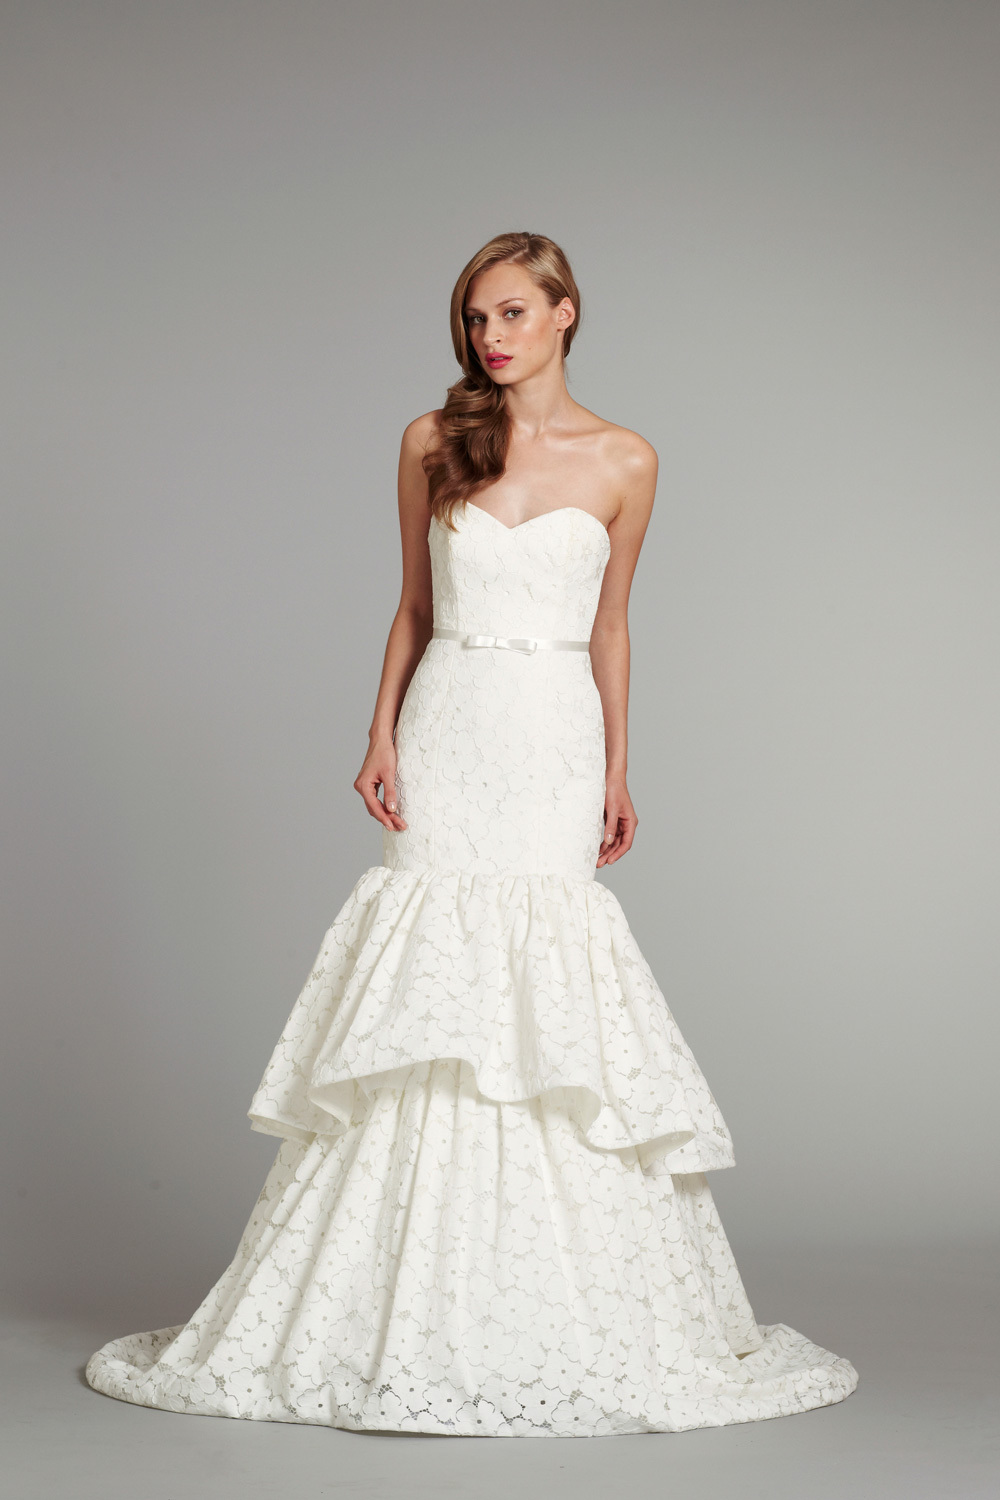 Bridal-gown-wedding-dress-jlm-hayley-paige-blush-fall-2012-poppy-front.full